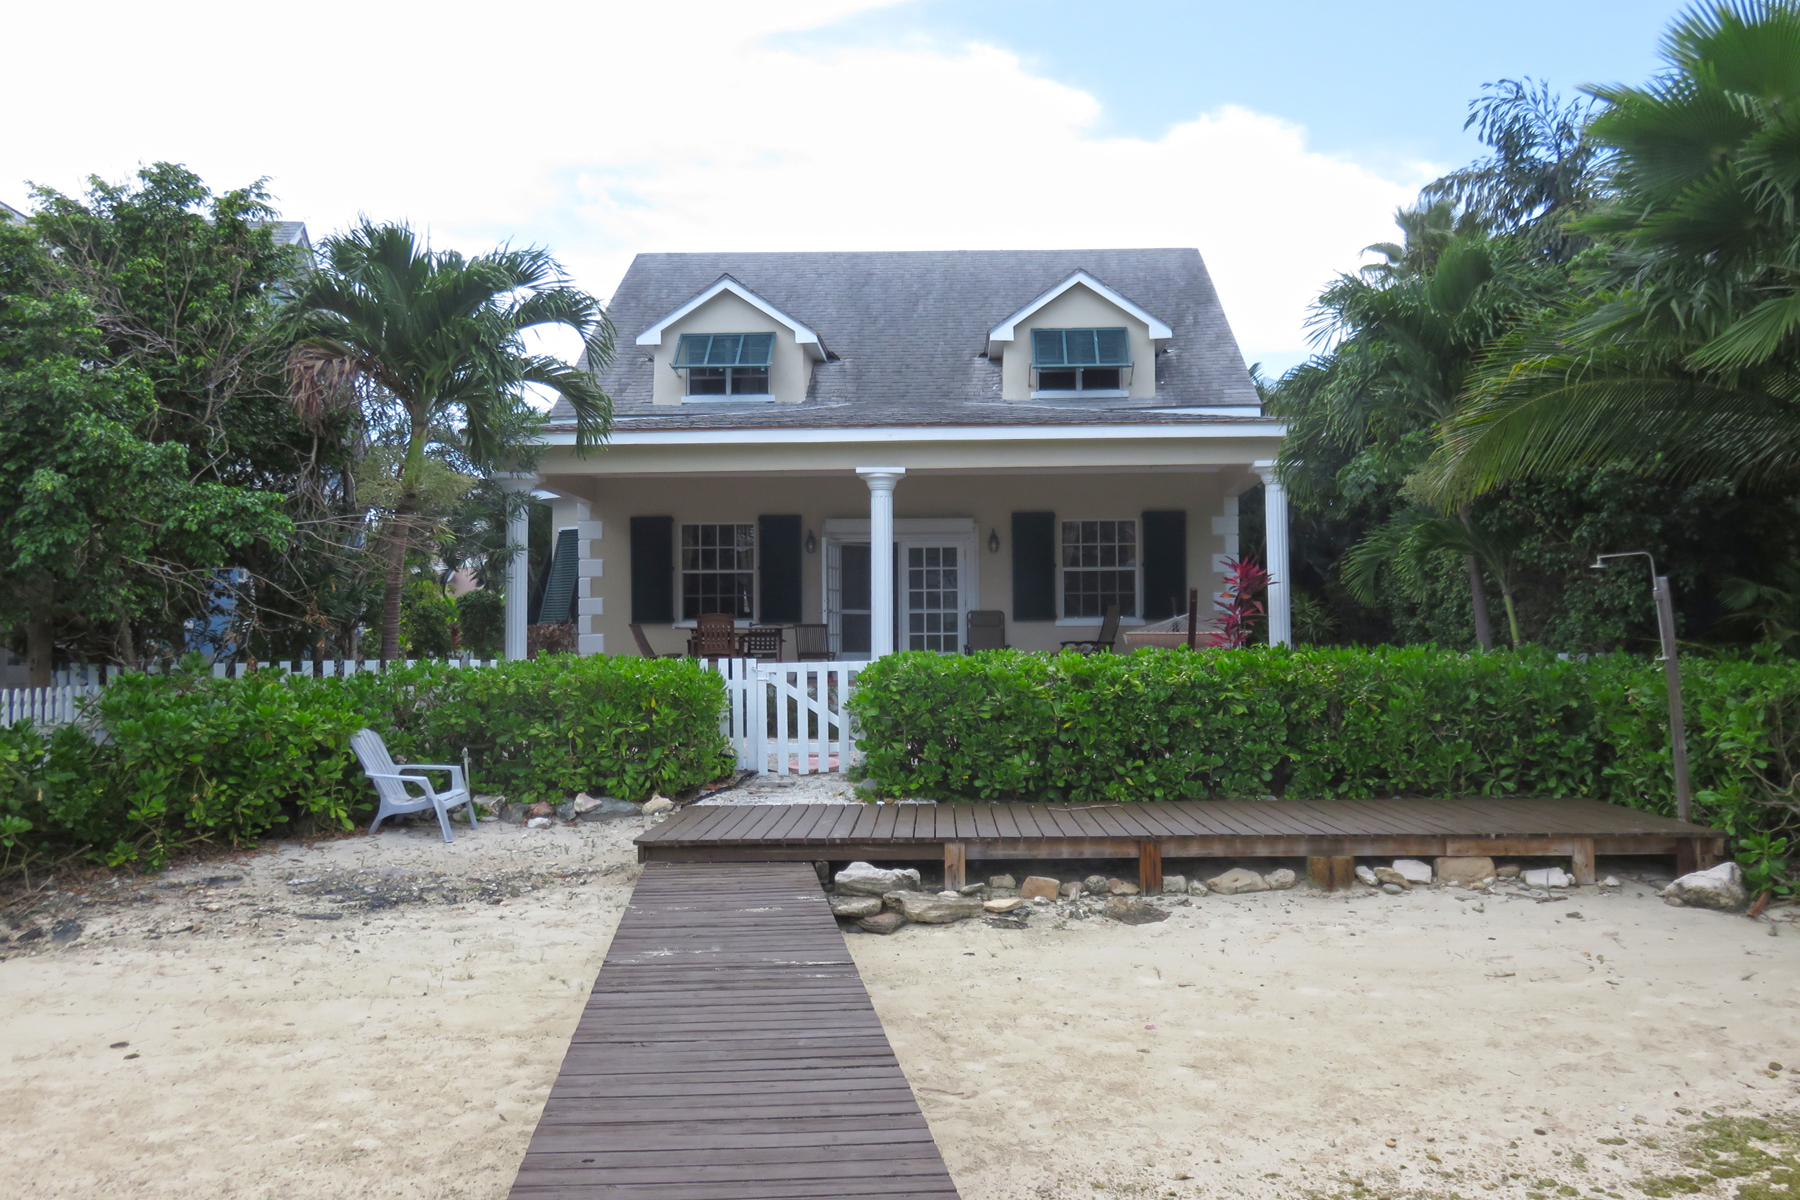 Single Family Home for Sale at Governor's Cay, Sandyport Sandyport, Cable Beach, Nassau And Paradise Island Bahamas